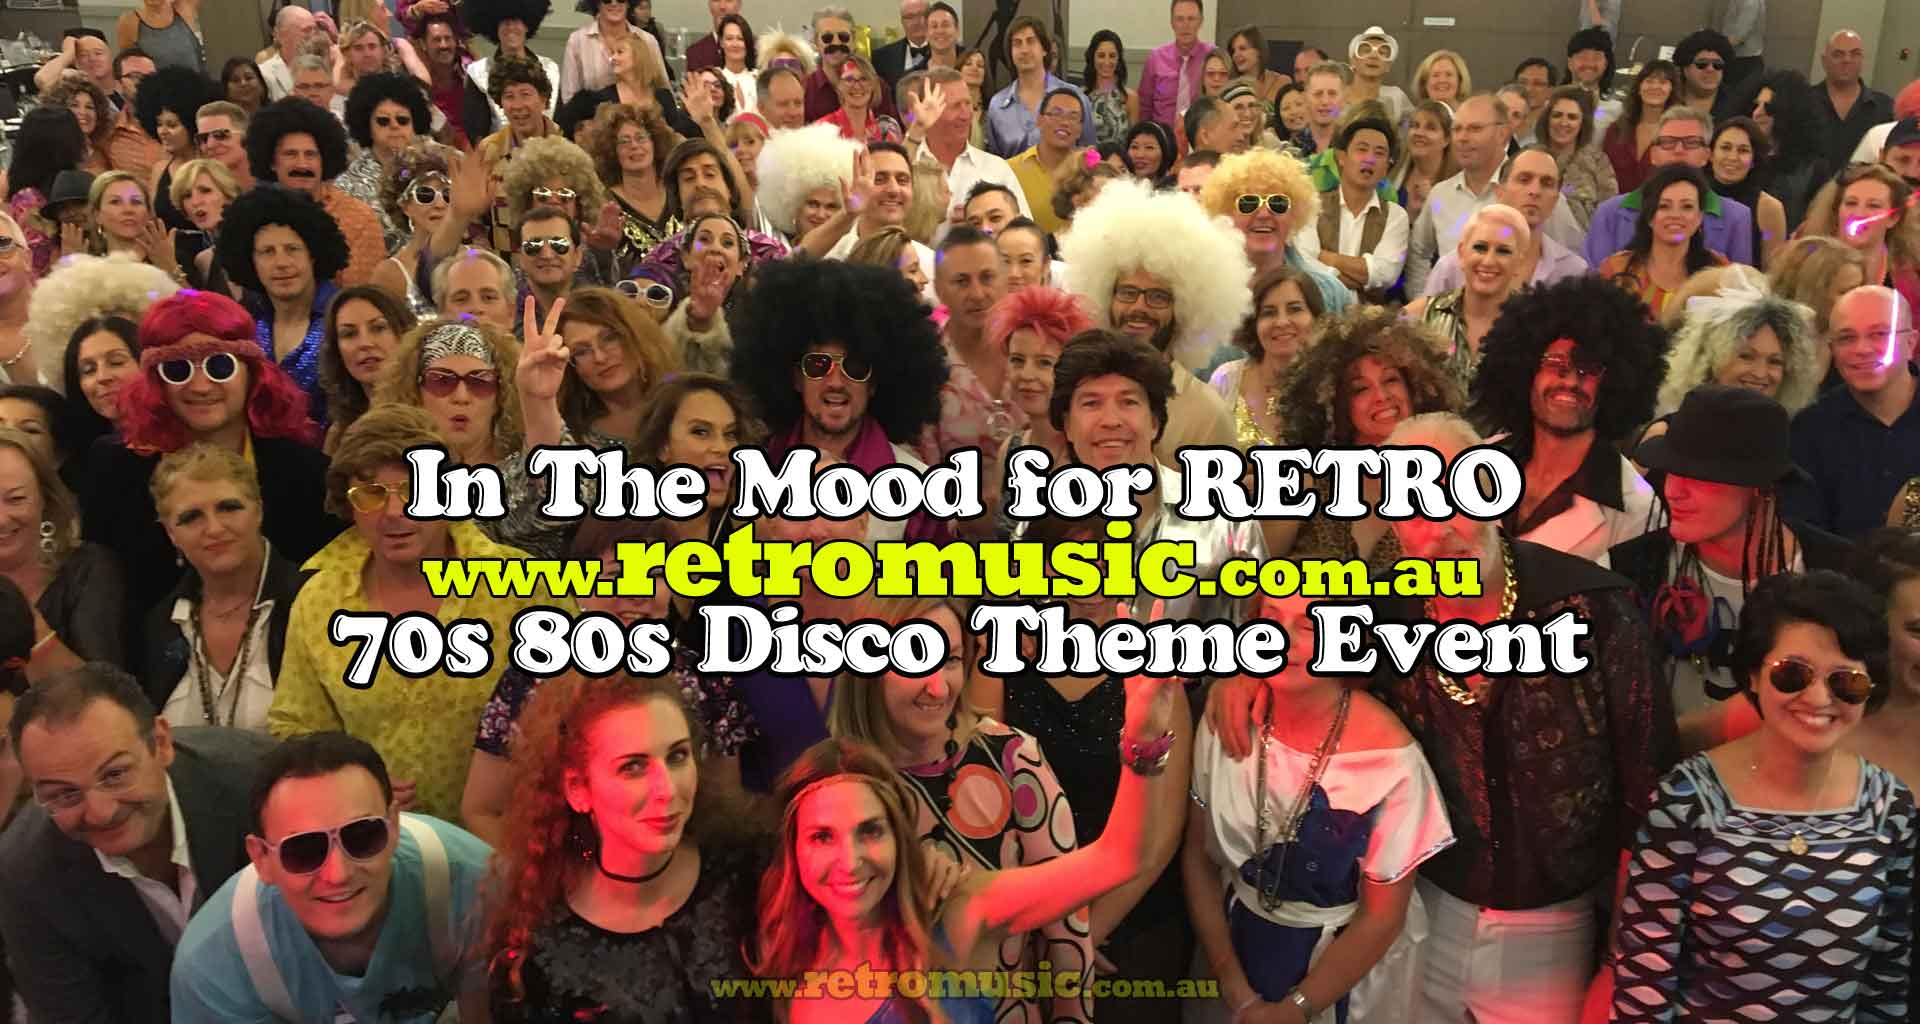 70s 80s themed event in the mood for retro